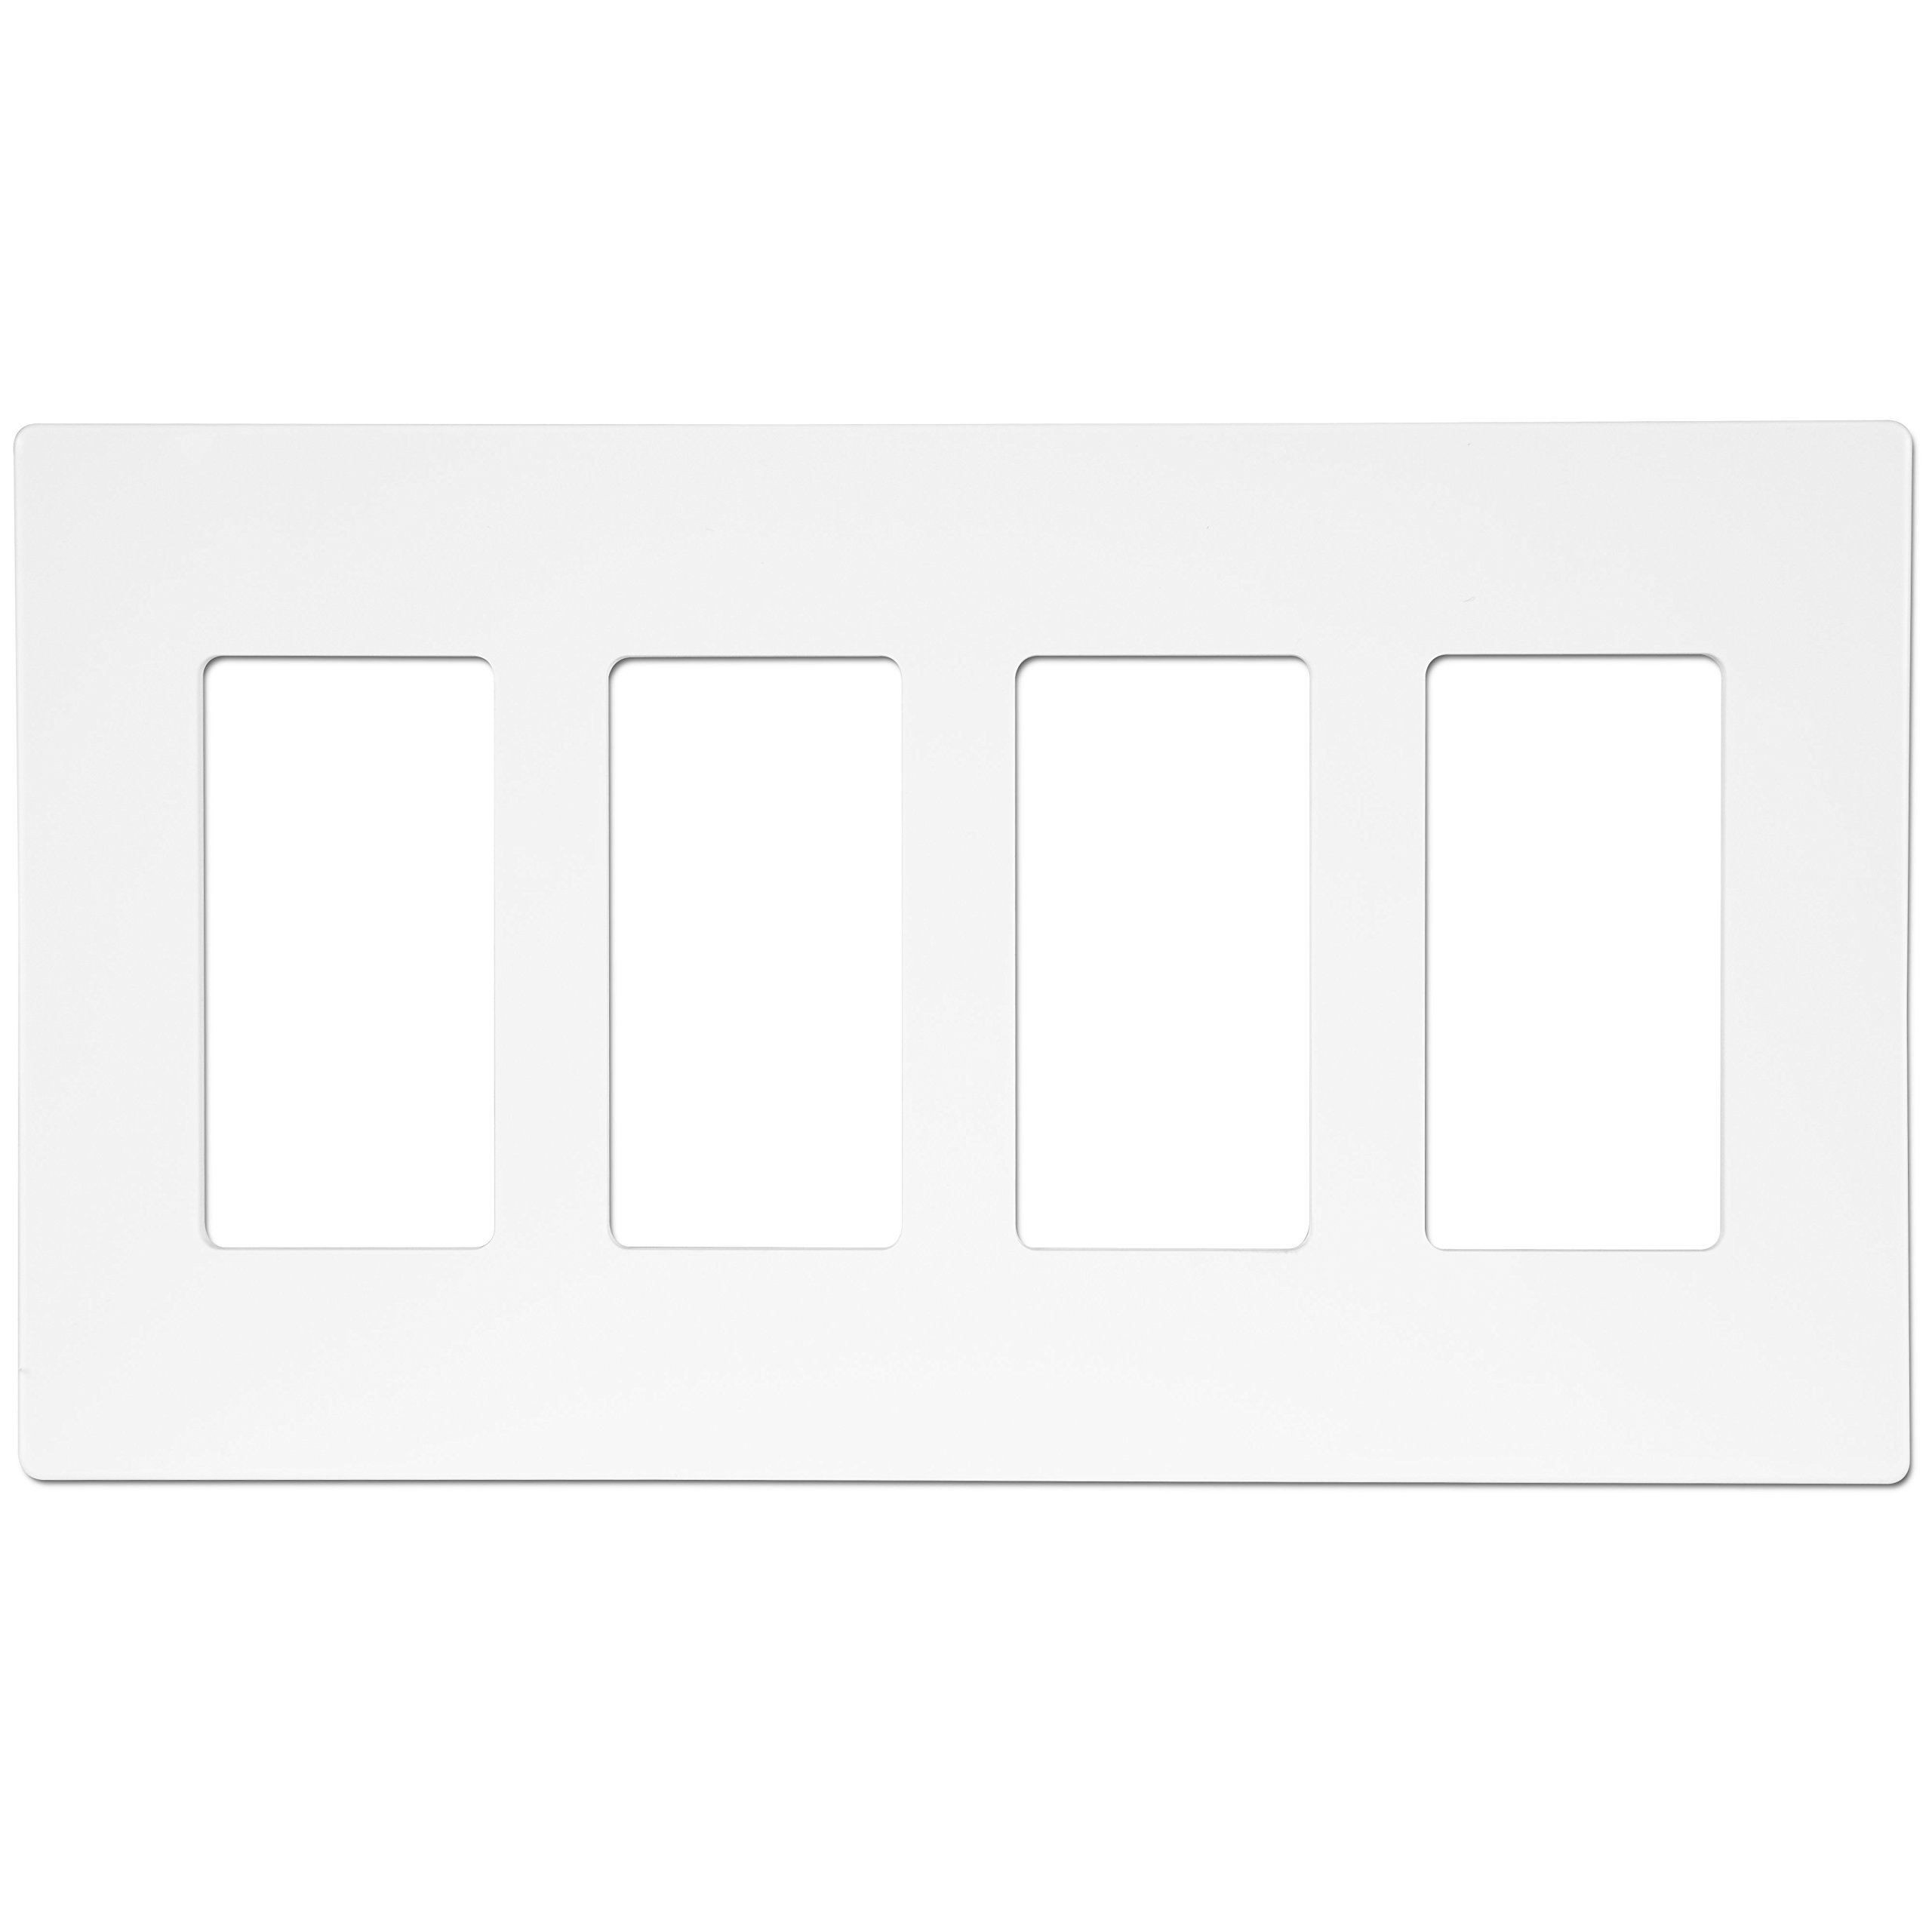 ENERLITES Screwless Decorator Wall Plates Child Safe Outlet Covers, Size 4-Gang 4.68'' H x 8.30'' L, Unbreakable Polycarbonate Thermoplastic, SI8834-W, White by ENERLITES